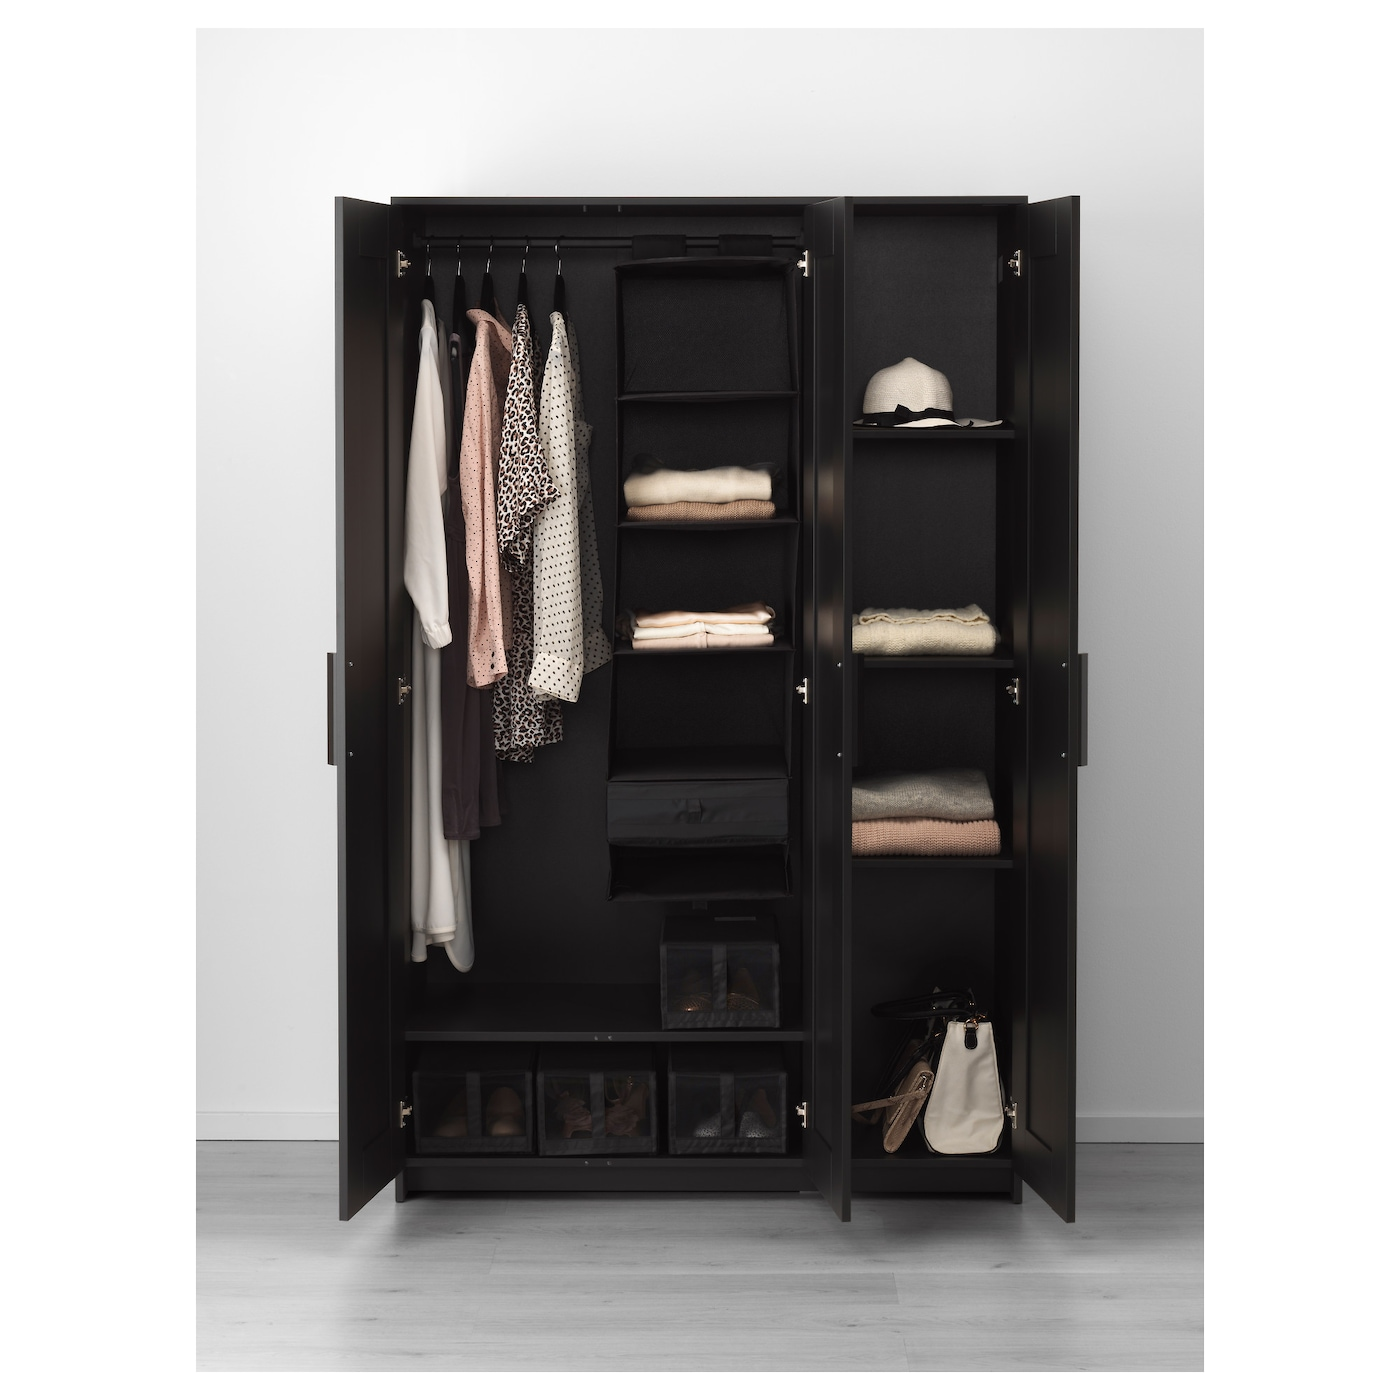 Brimnes wardrobe with 3 doors black 117x190 cm ikea - Ikea armoire 3 portes ...